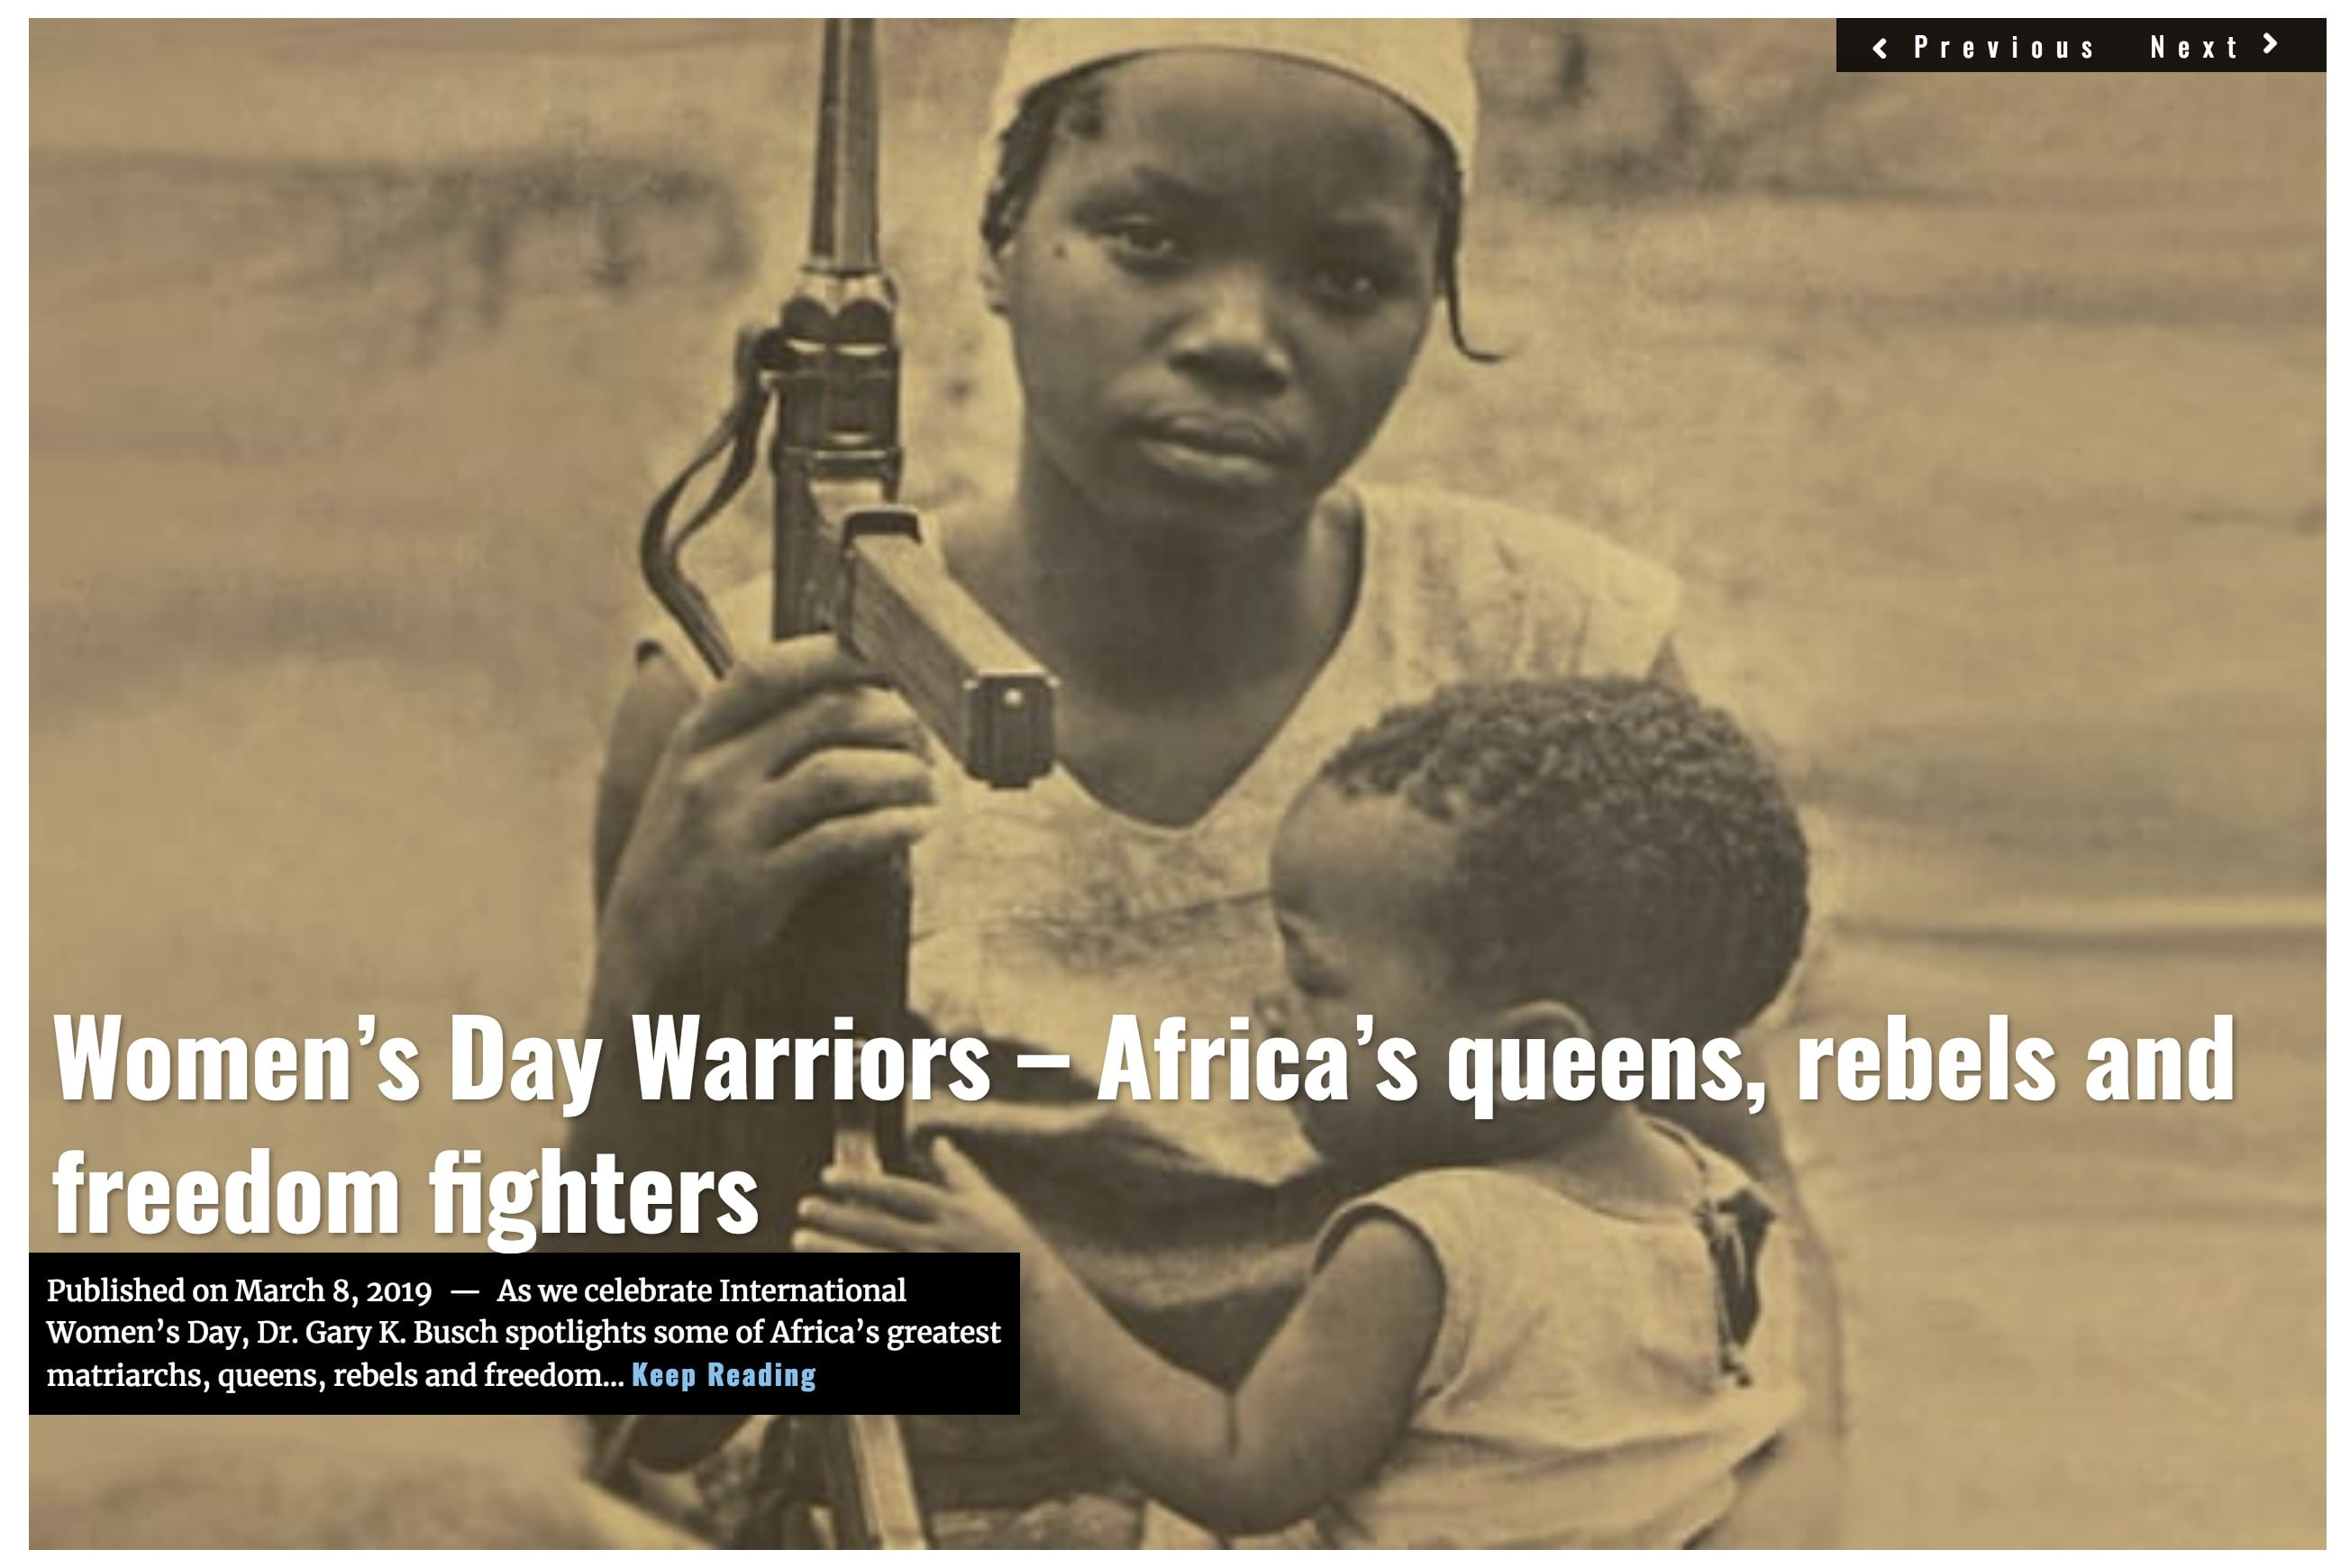 Image Lima Charlie News Headline Womens Day Africa MAR 8 2019